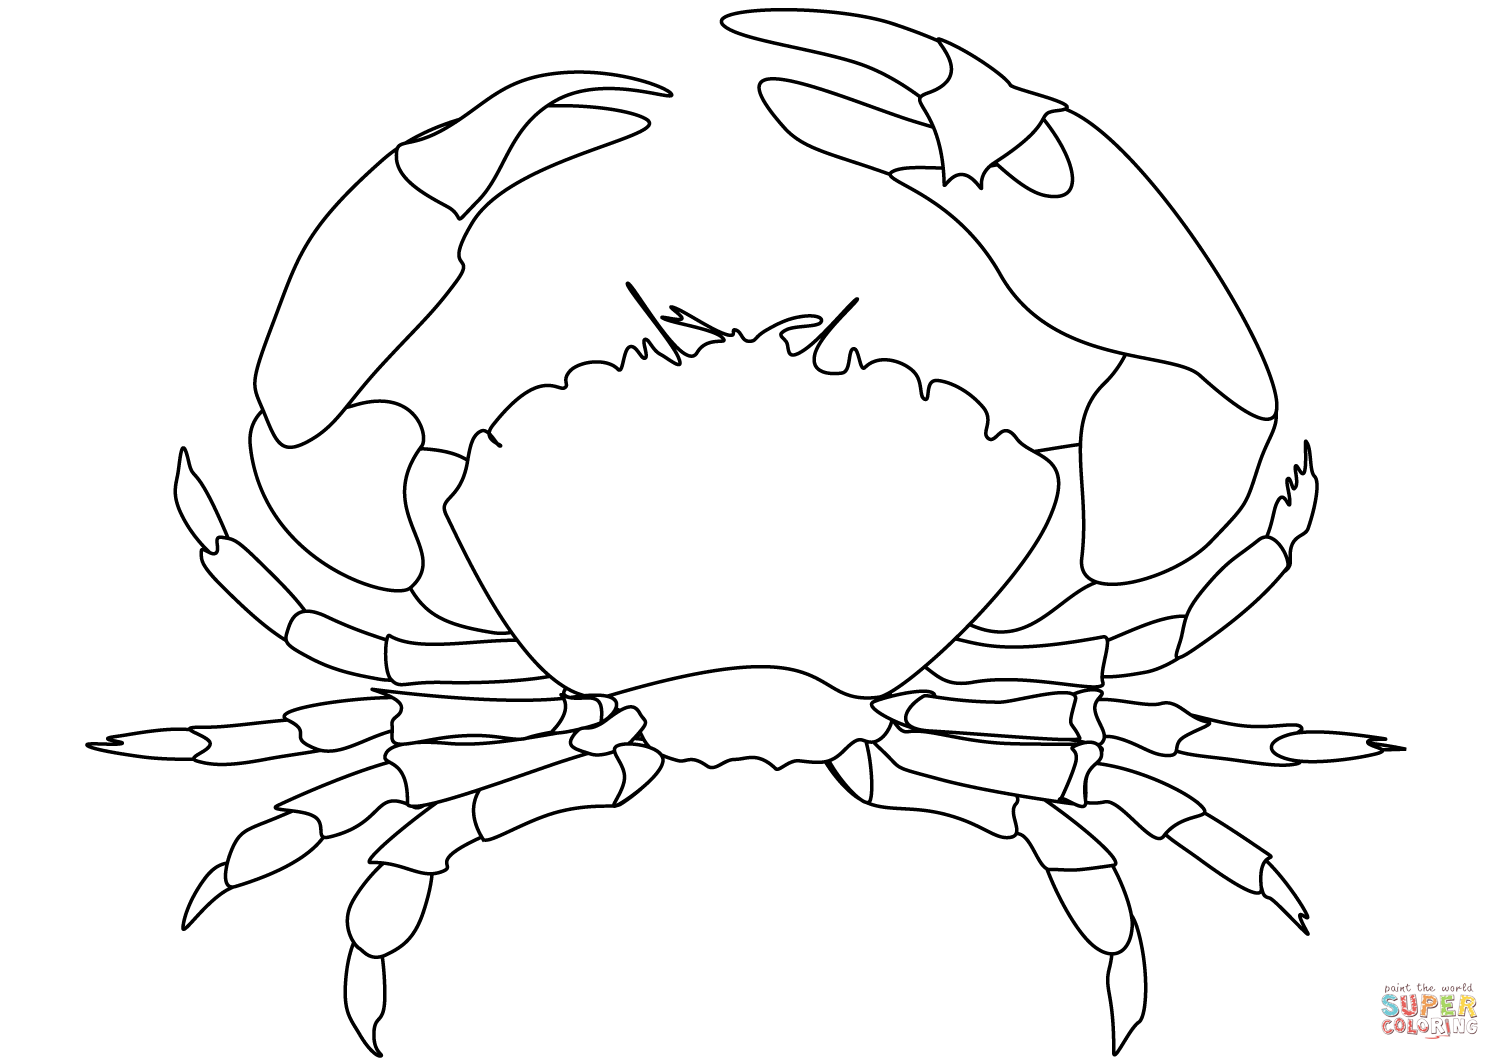 crabs coloring pages free printable hermit crab coloring pages for kids coloring pages crabs